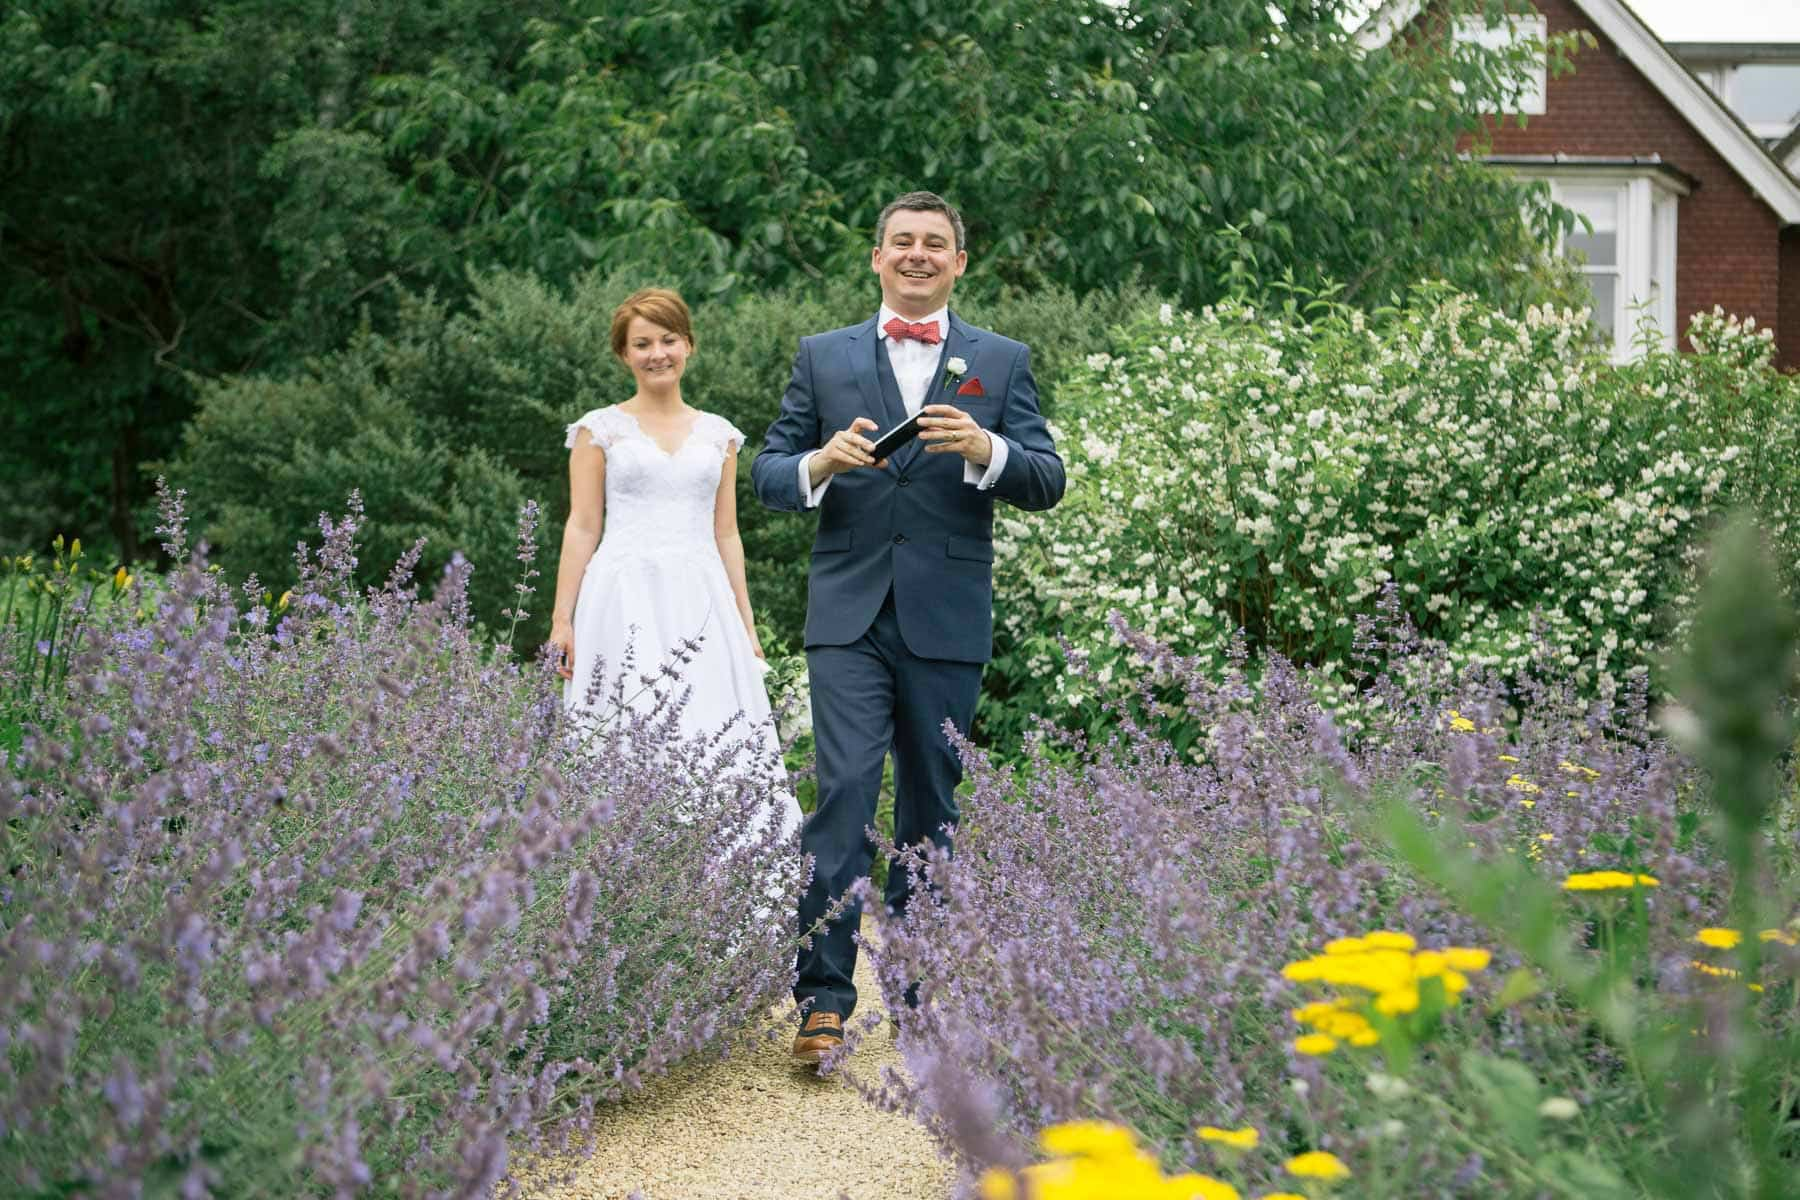 Bride and groom laughing together among lavender bushes